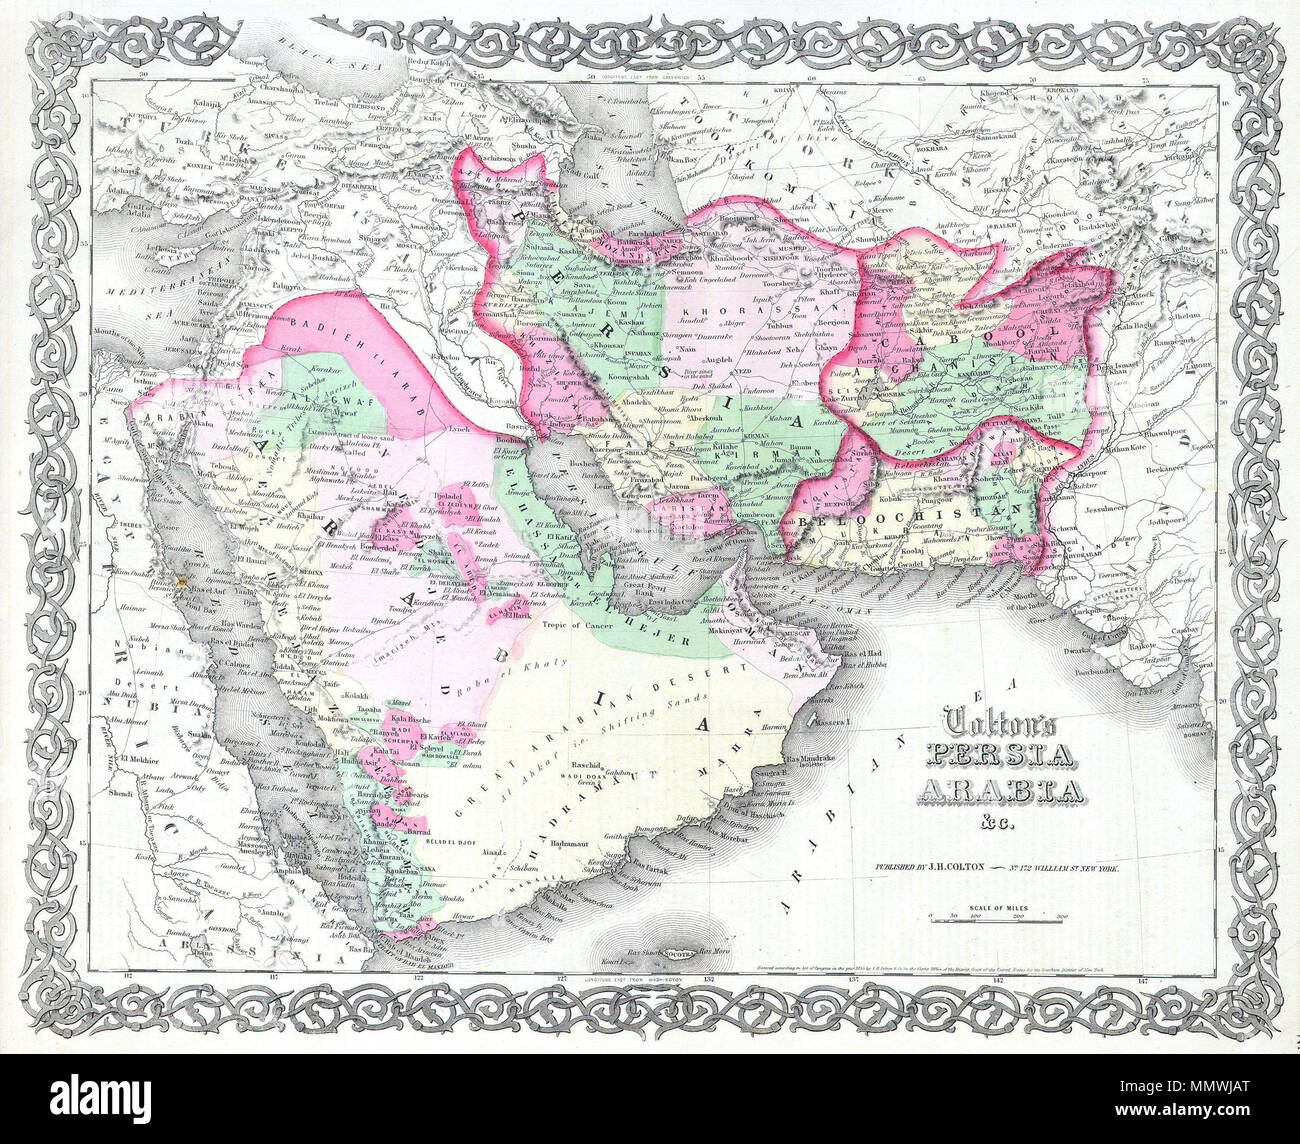 English Map Of Persia And Arabia From J H Colton S 1855 Atlas Of